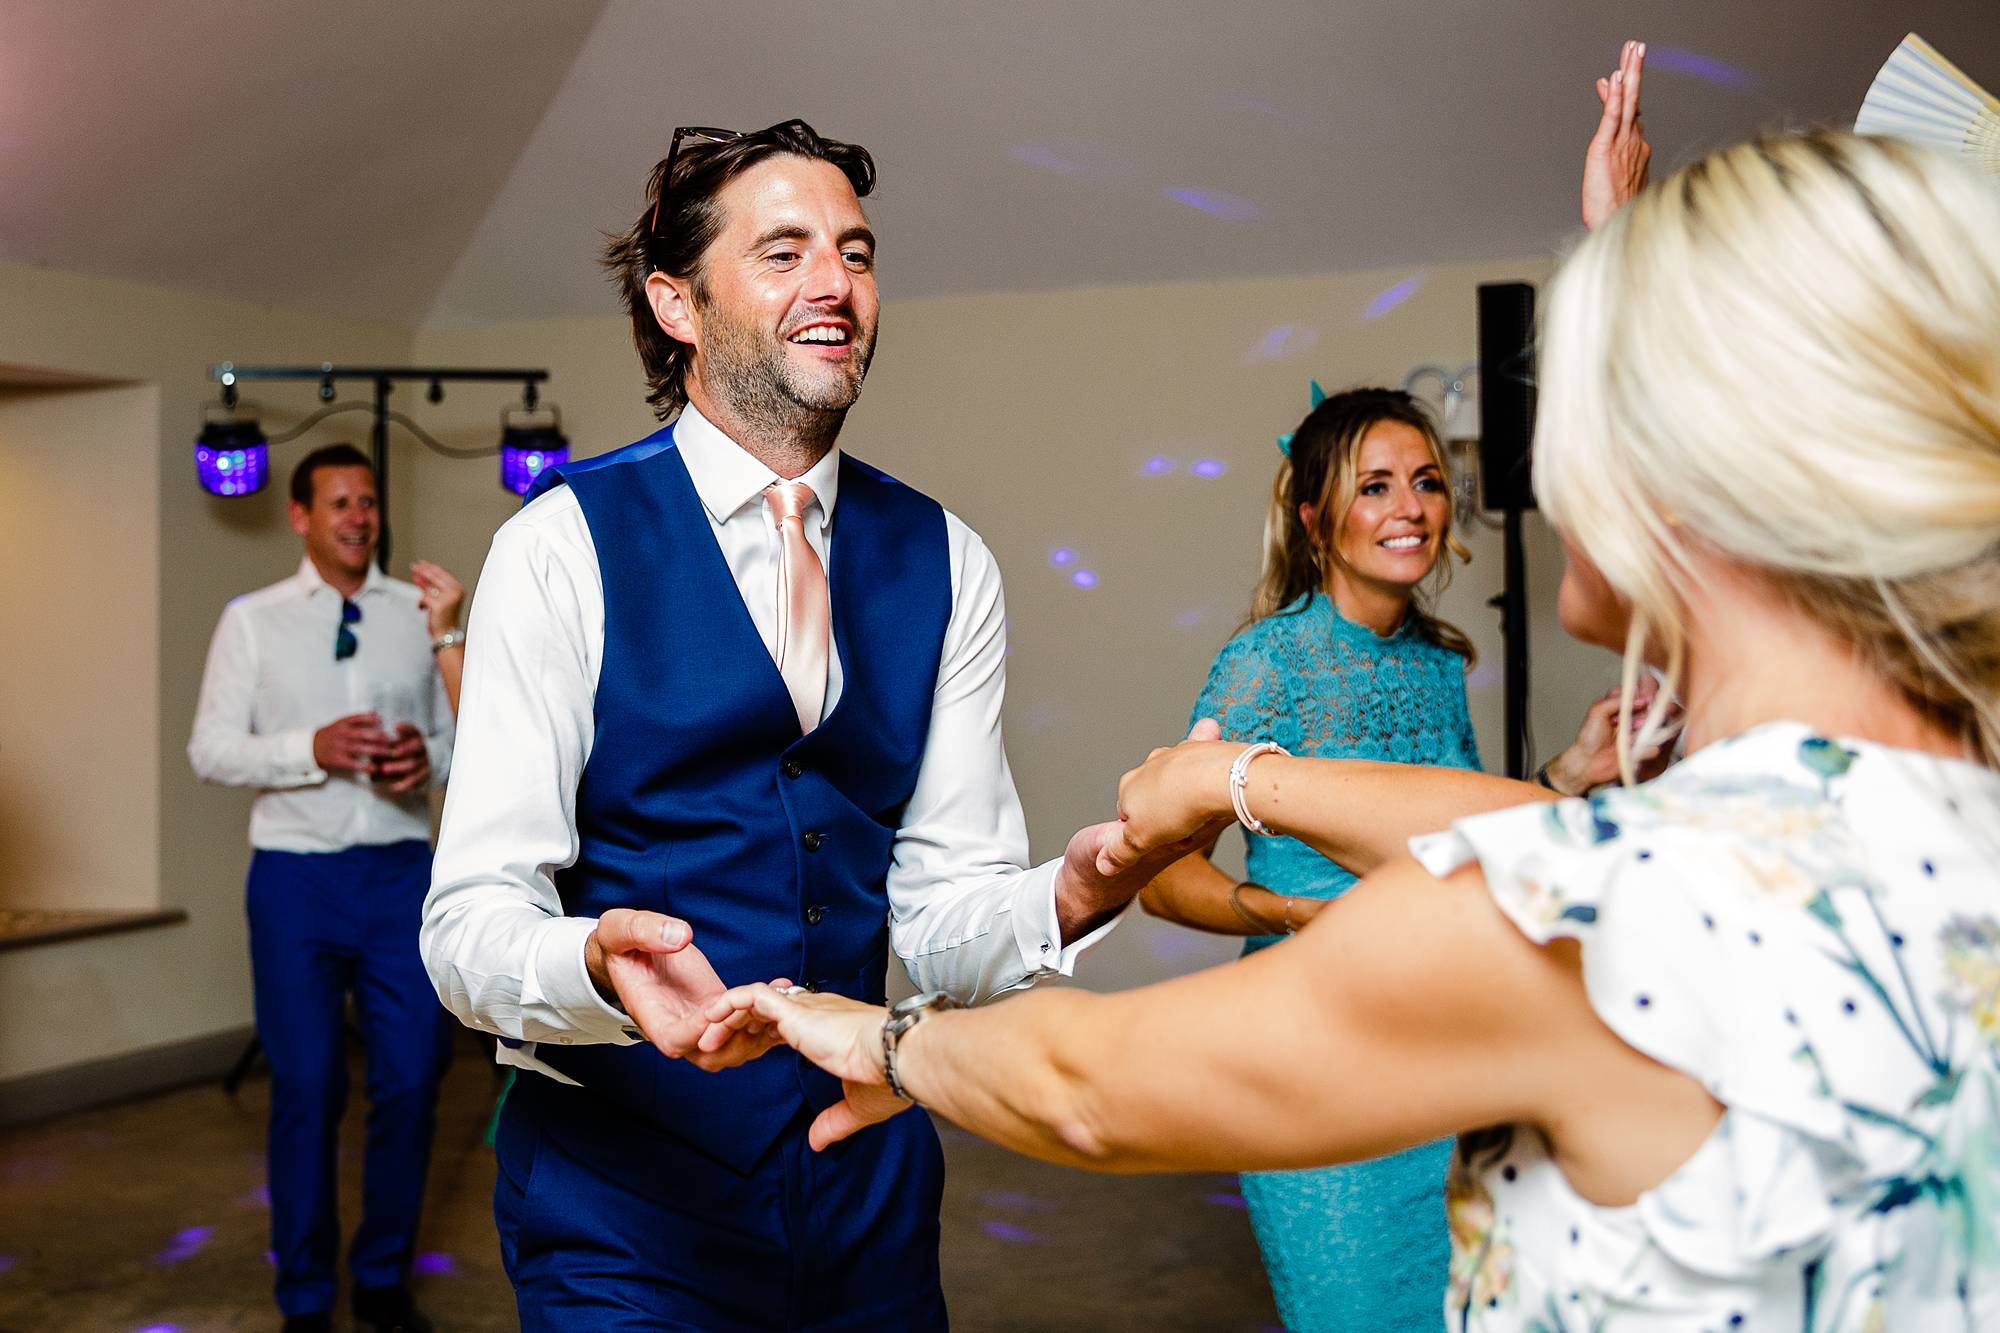 Houchins Essex Wedding Photographer_0130.jpg